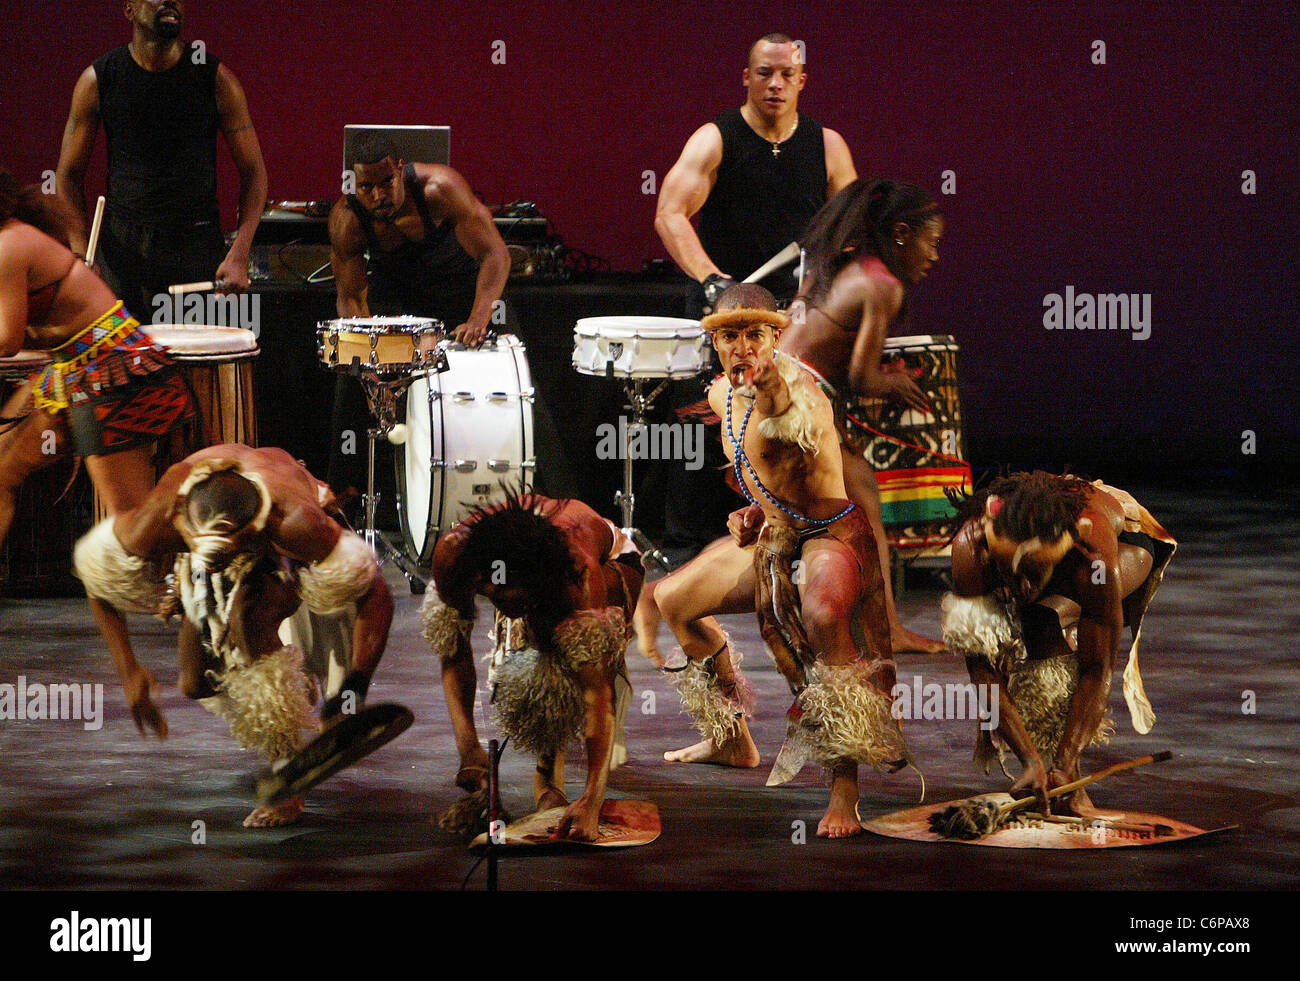 Step Afrika! hold their final performance night at the Landsburgh Theater as a thank you to supporters of their - Stock Image